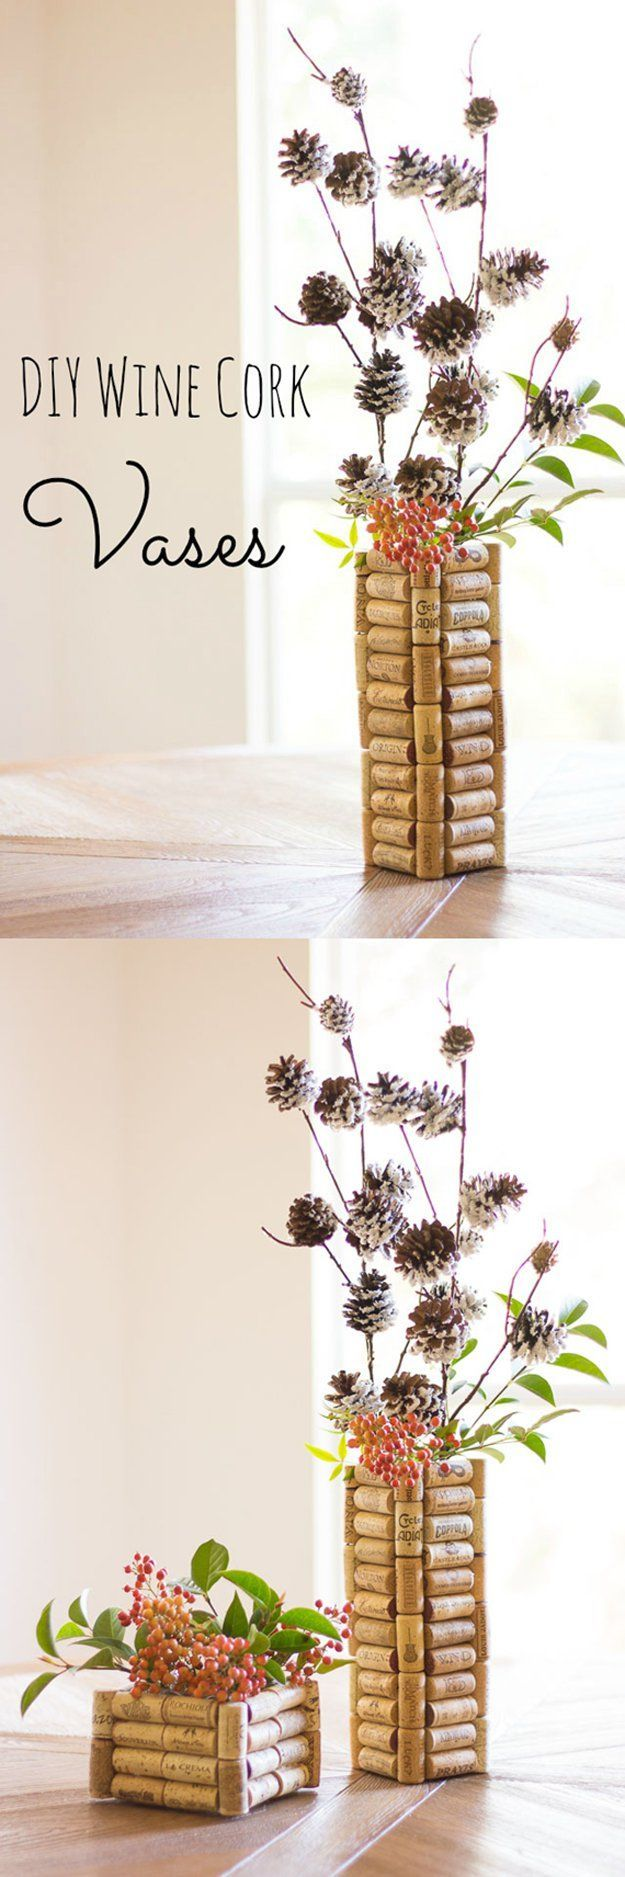 Craft ideas with corks - Best 20 Corks Ideas On Pinterest Wine Cork Projects Wine Cork Crafts And Wine Cork Art